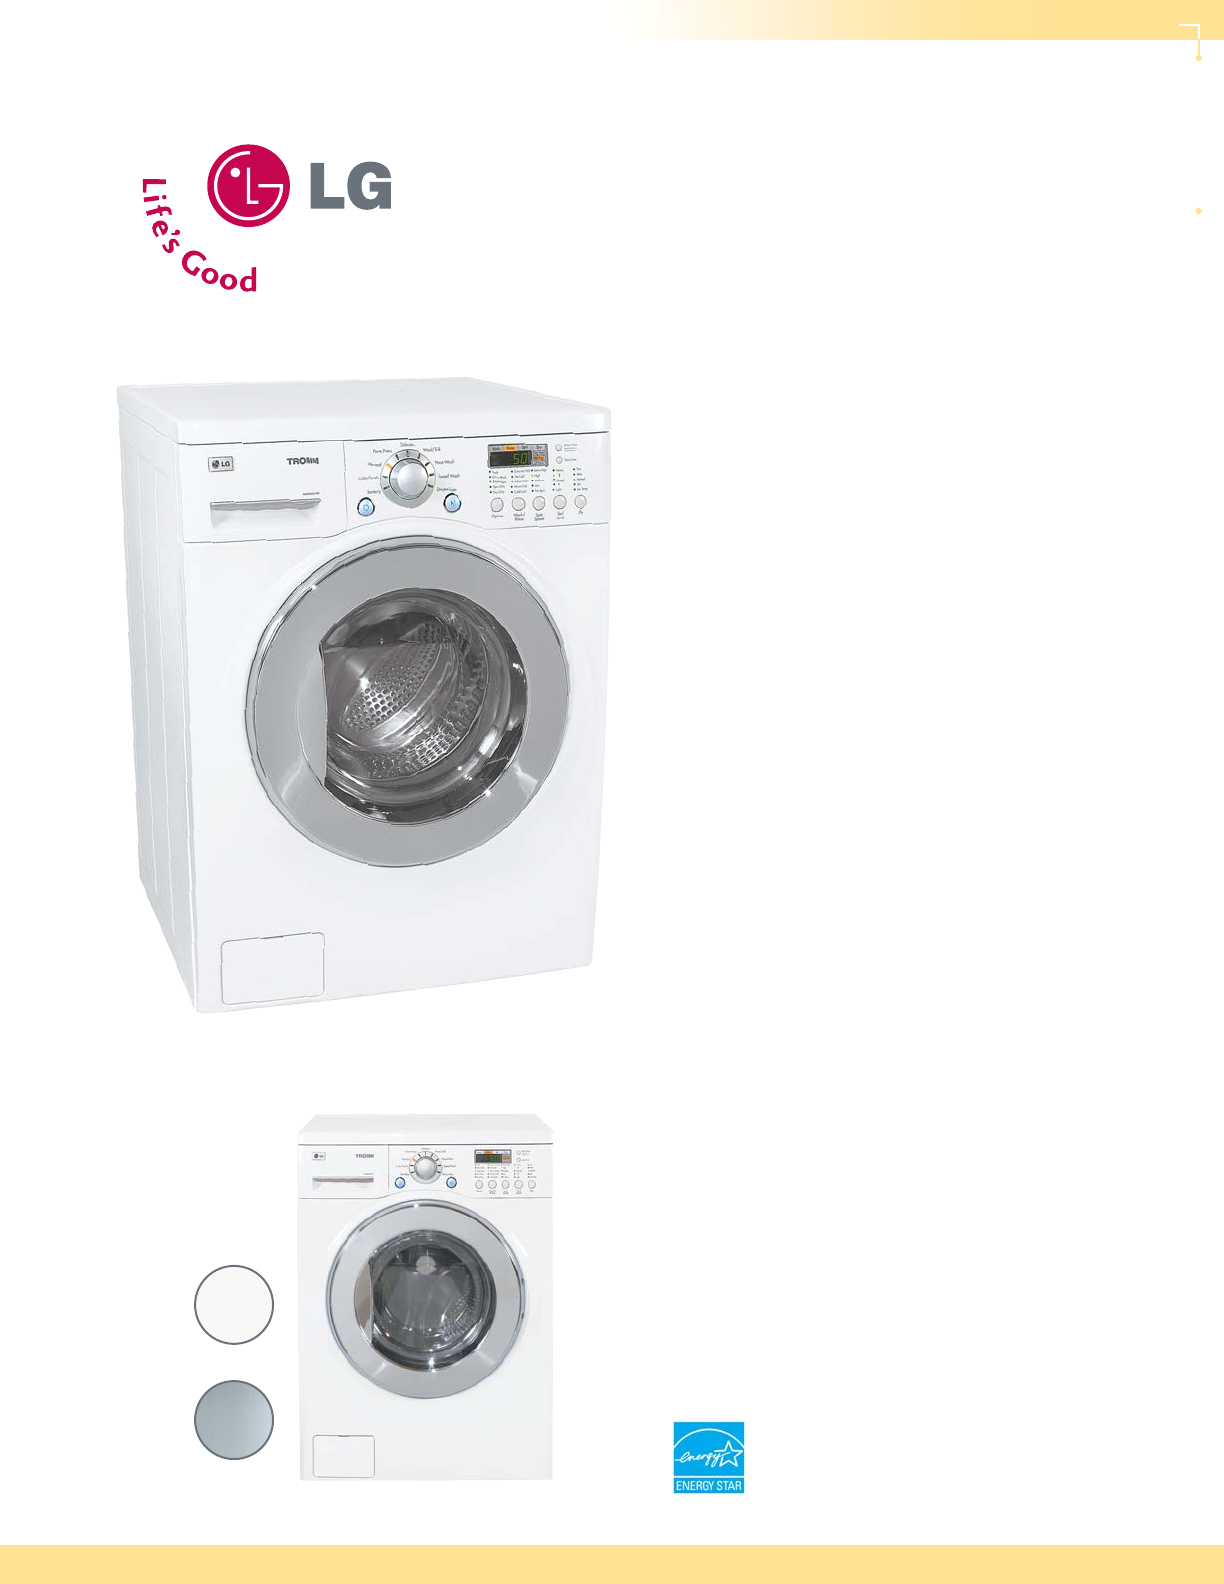 lg electronics washer dryer wm3431hs user guide manualsonline com rh laundry manualsonline com LG Tromm Washer Manual LG Washing Machine ManualsOnline